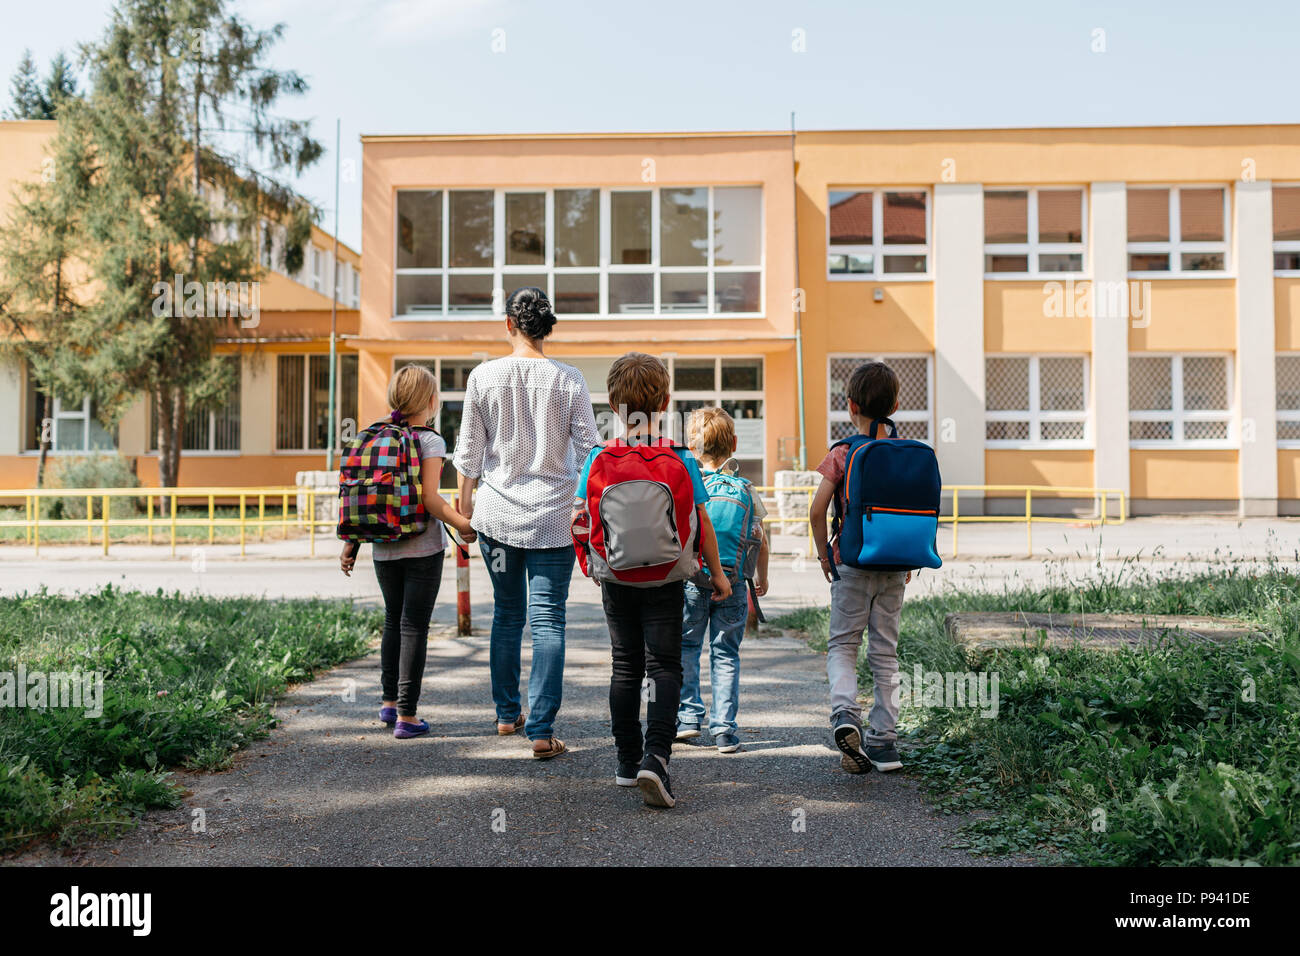 Children on the way to school with an adult supervision. Rear view of a group of children walking to school accompanied by a parent volunteer. - Stock Image